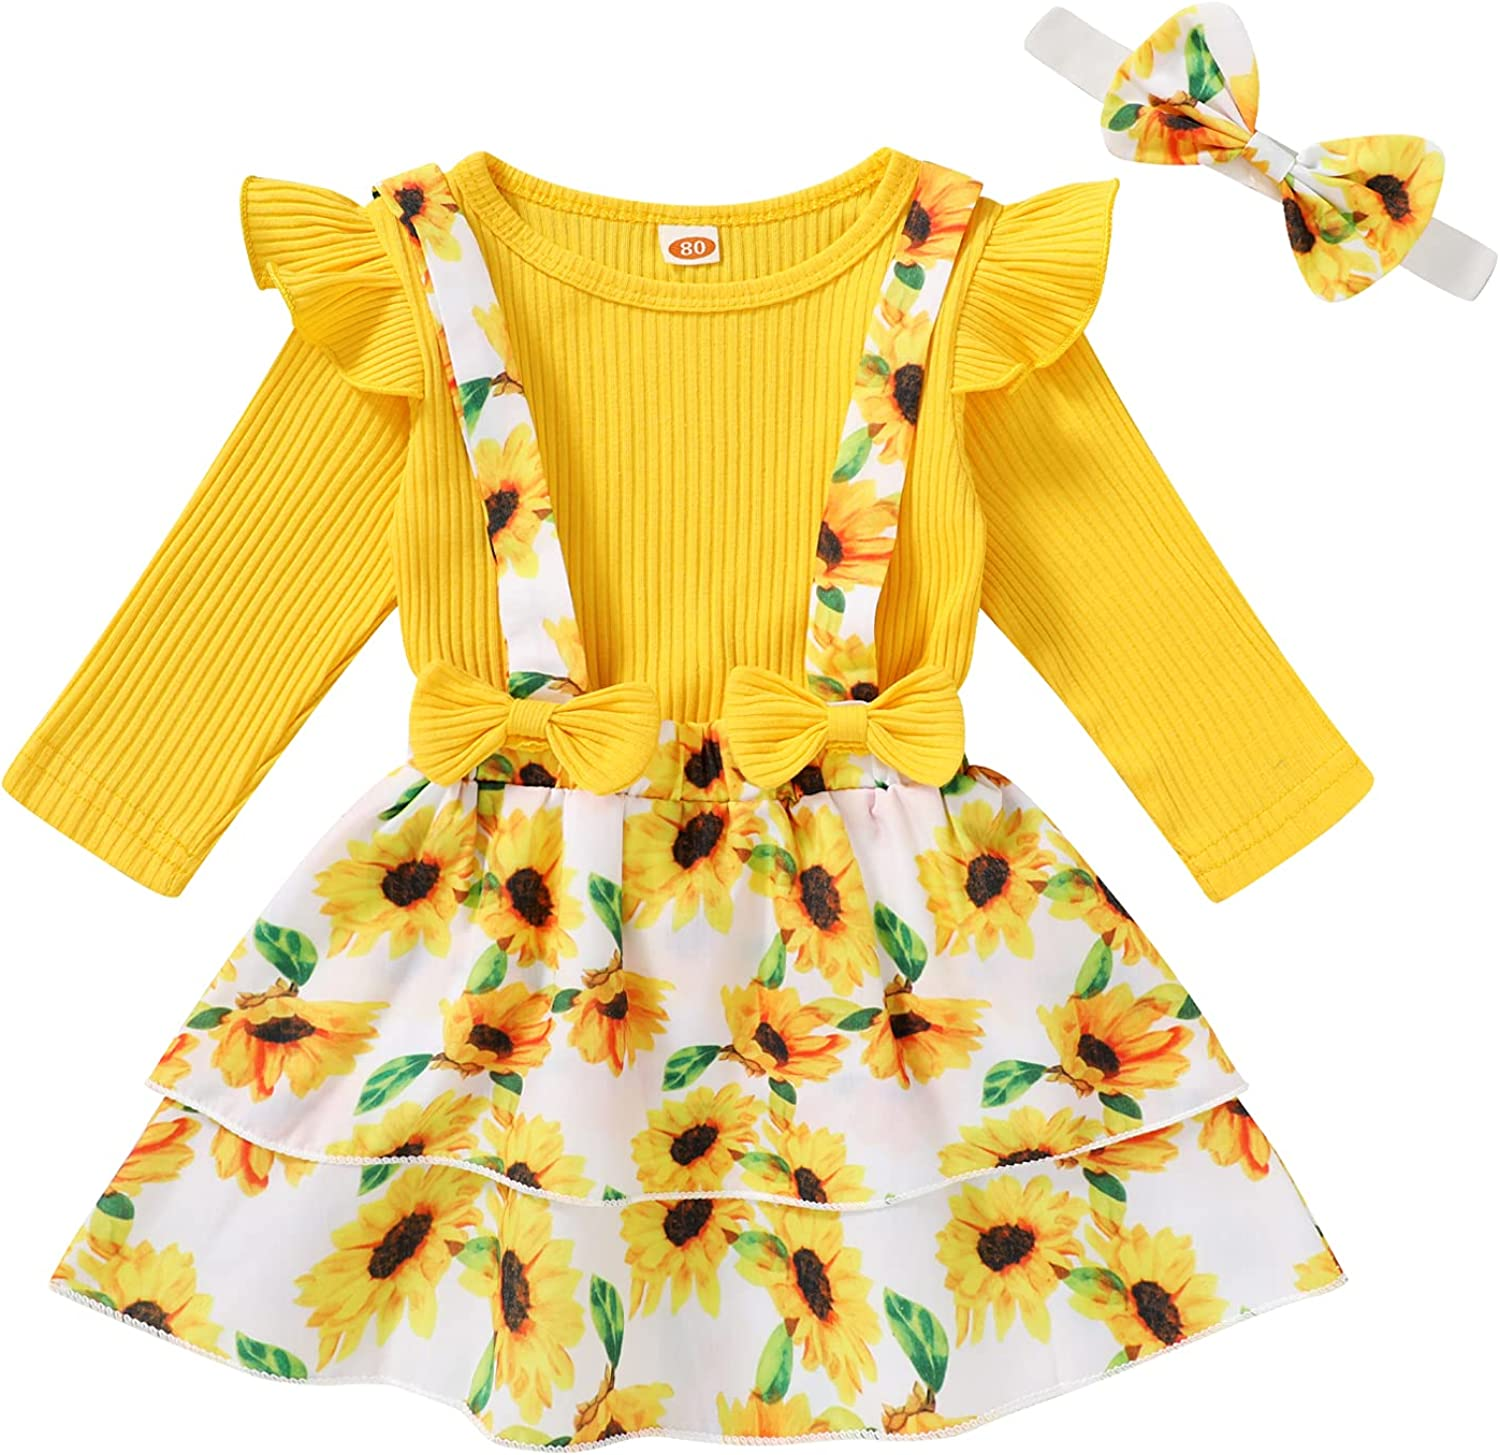 Toddler Baby Girl Outfits 3Pcs Long Sleeve Ruffle Floral Skirt Set Fall Winter Clothes 1-4T